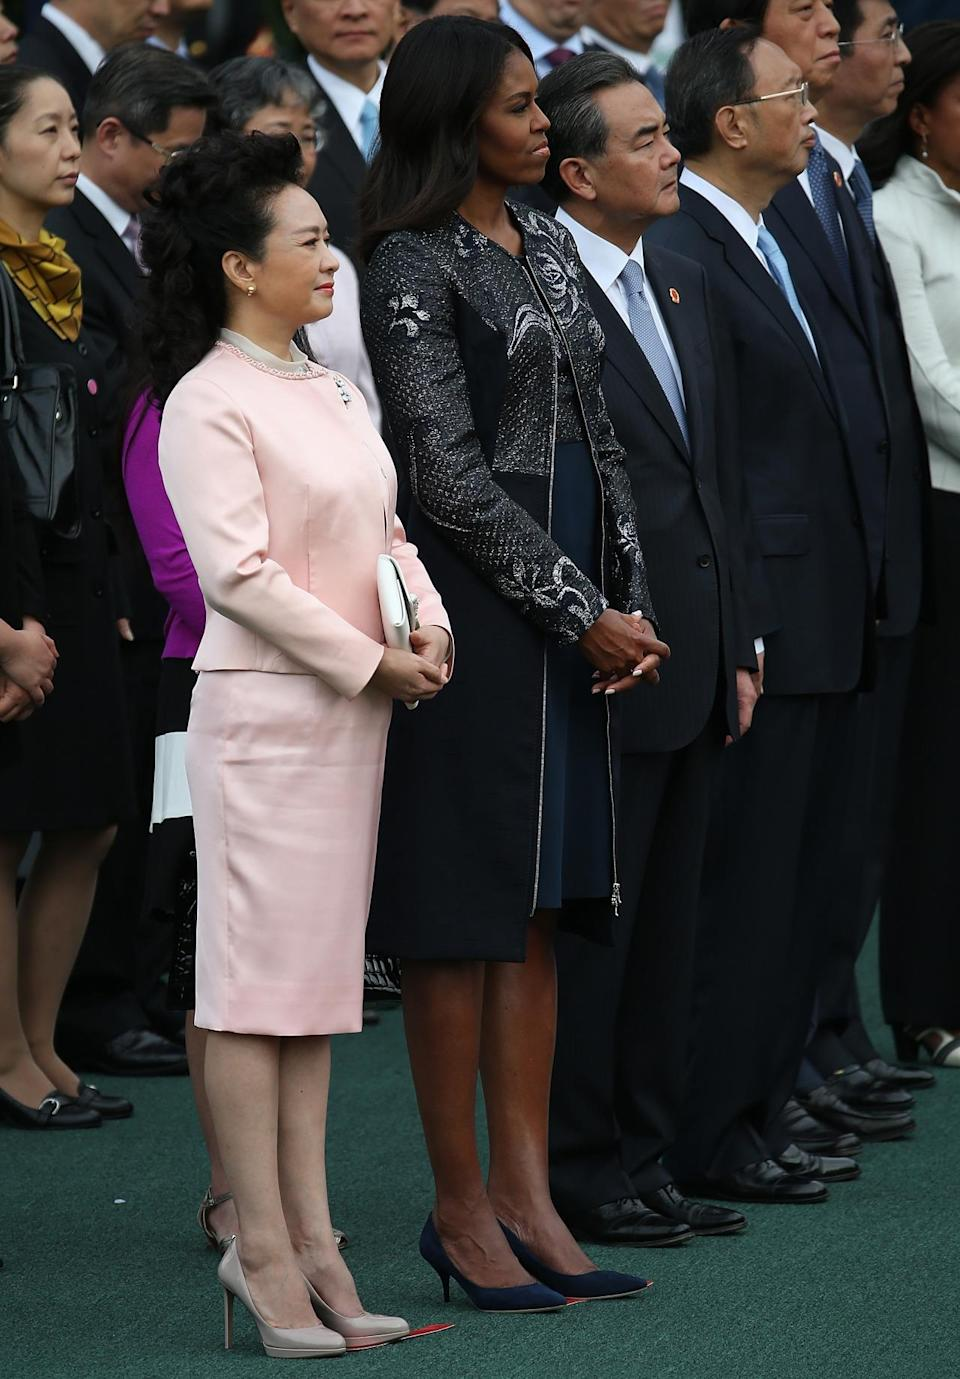 <p>Listening to their husbands speak during an arrival ceremony on the south lawn of the White House grounds Peng Liyuan (L), wife of Chinese President Xi Jinping, and U.S. first lady Michelle Obama listen as Chinese President Xi Jinping and U.S. President Barack Obama speaks September 25, 2015 in Washington, DC. <br></p>